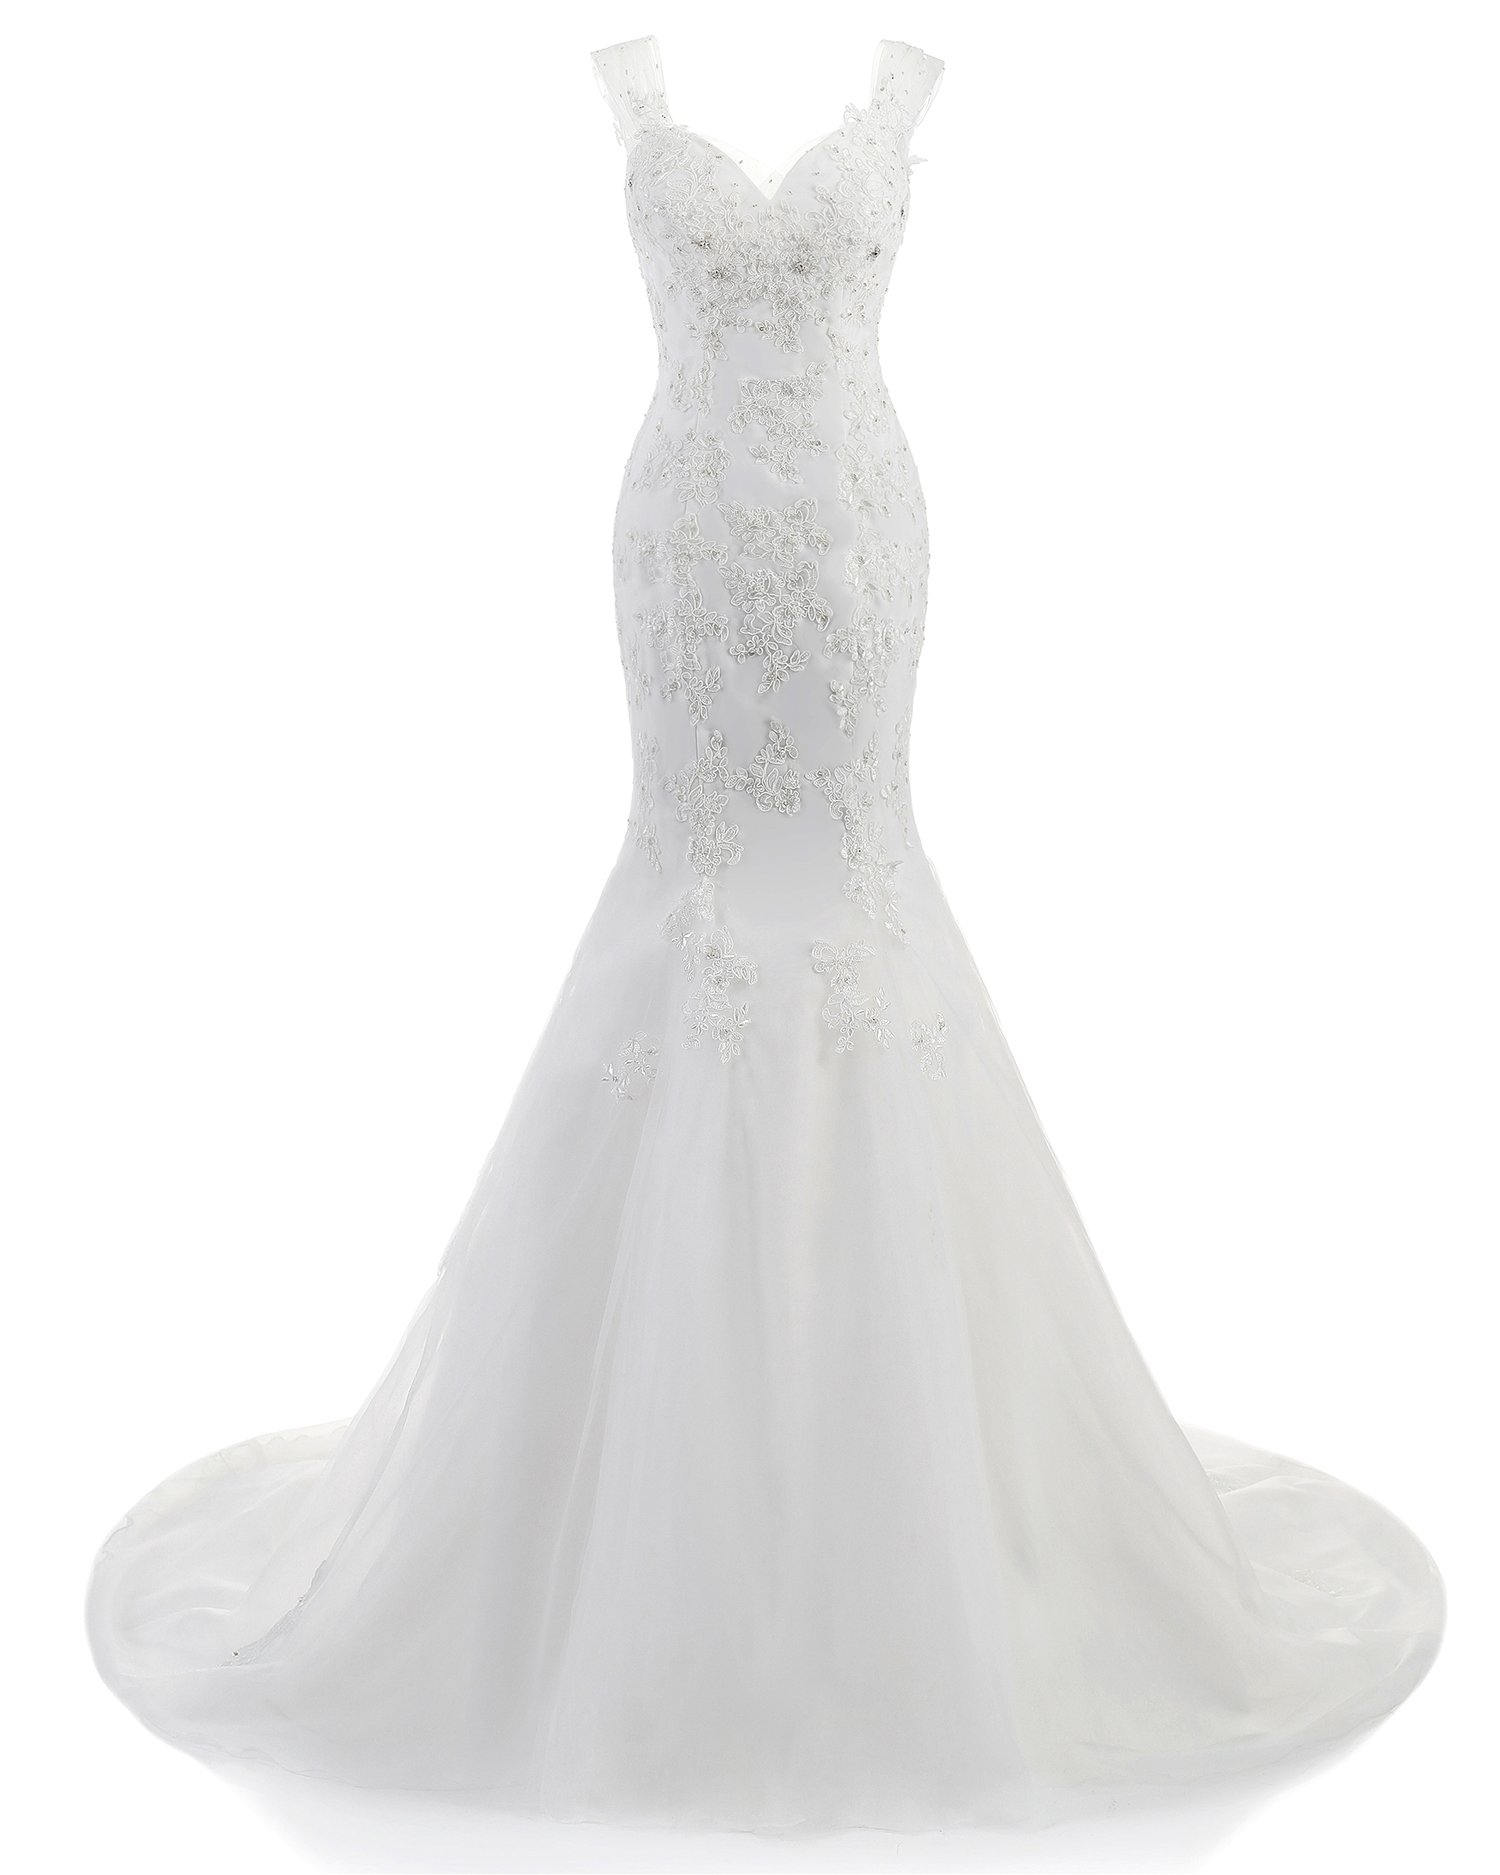 ABaowedding 2015 Women's Sleeveless Mermaid Wedding Dress Long Ivory (size16) by ABaowedding